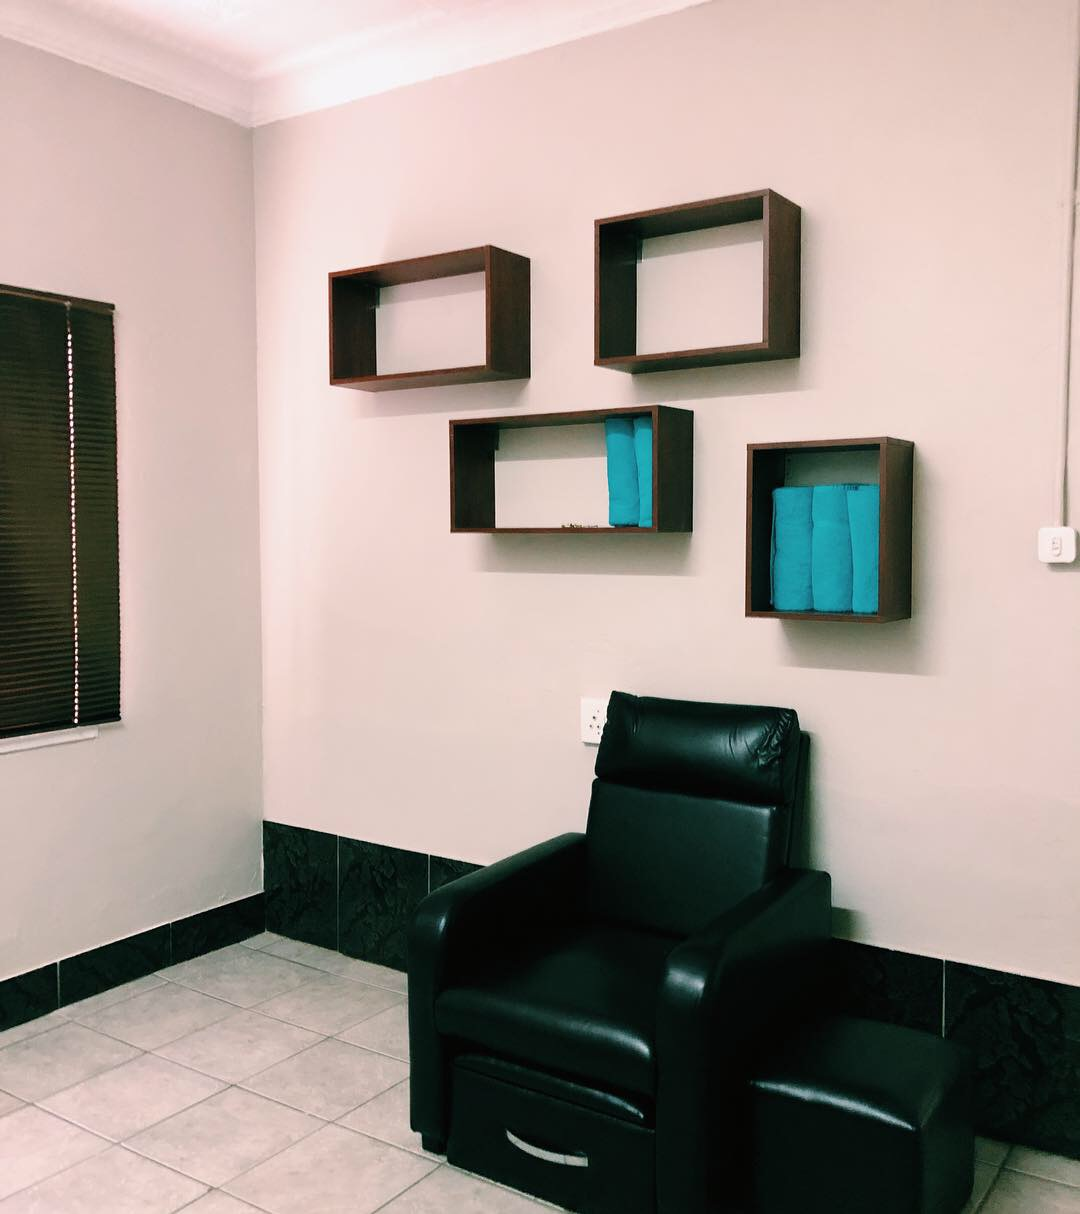 RENT A CHAIR IN A BEAUTY SALON